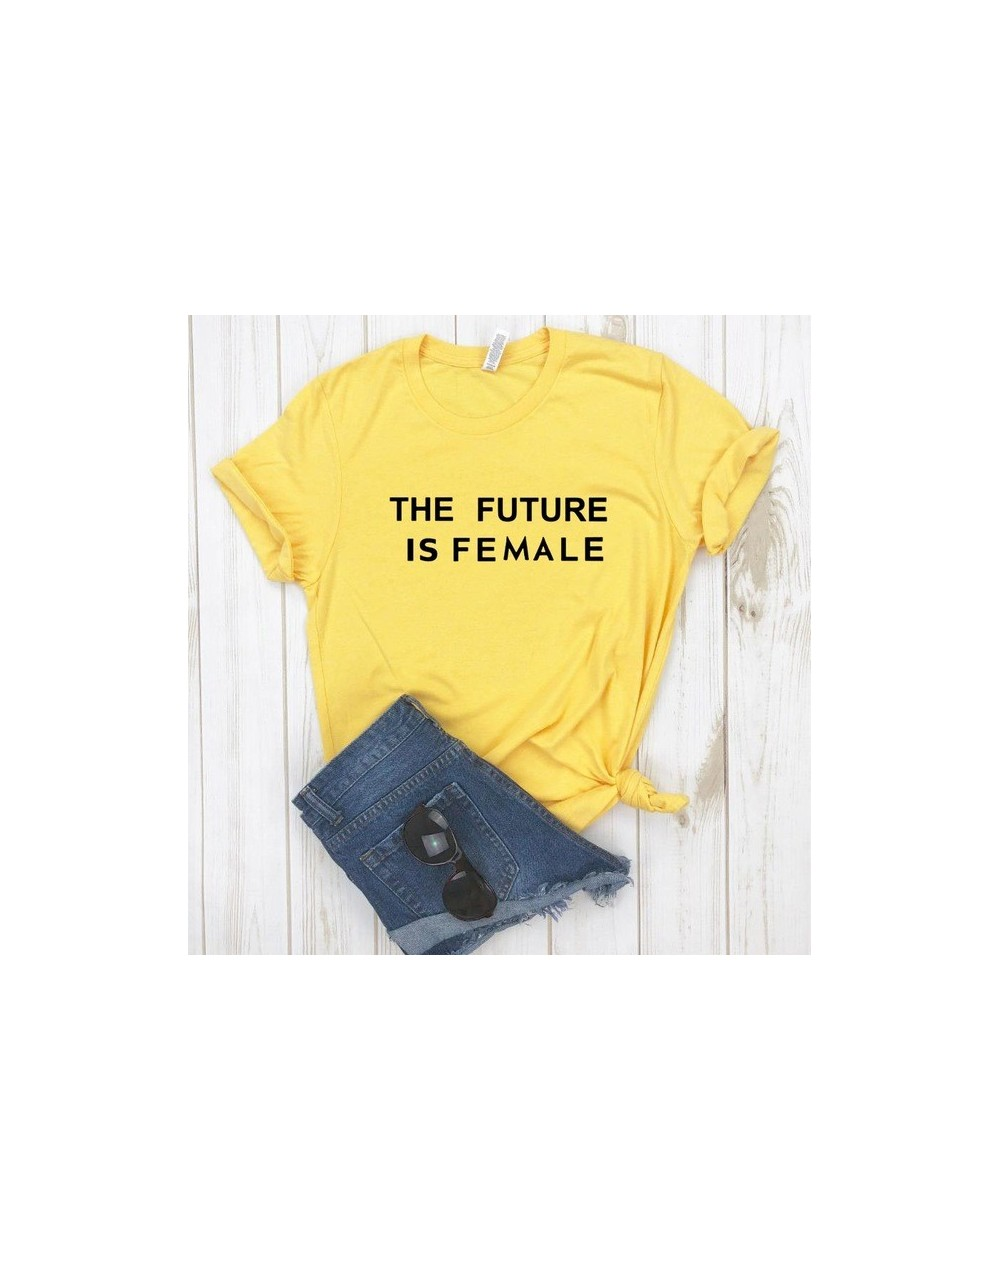 THE FUTURE IS FEMALE print Women tshirt Cotton Casual Funny t shirt For Lady Girl Top Tee Hipster Drop Ship SB-9 - YELLOW - ...